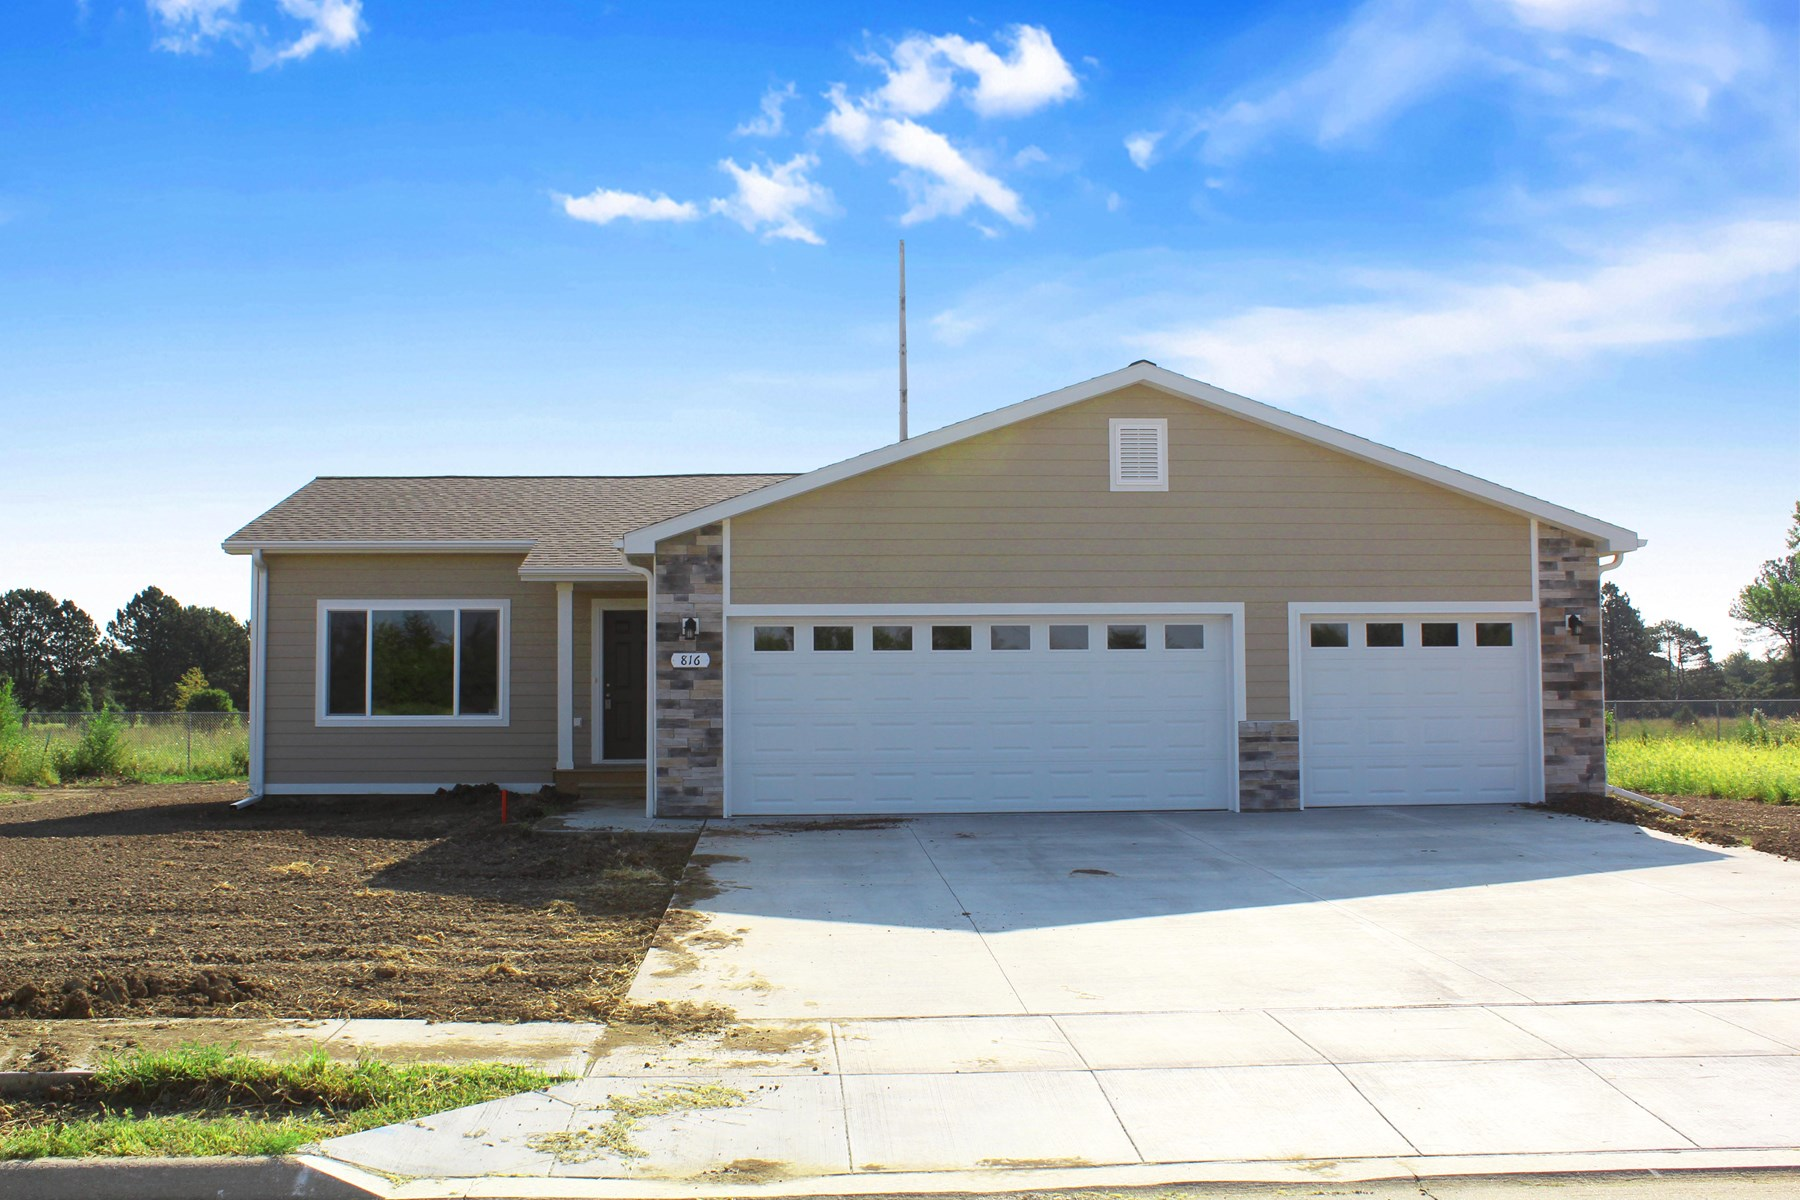 Ranch style home in Beatrice